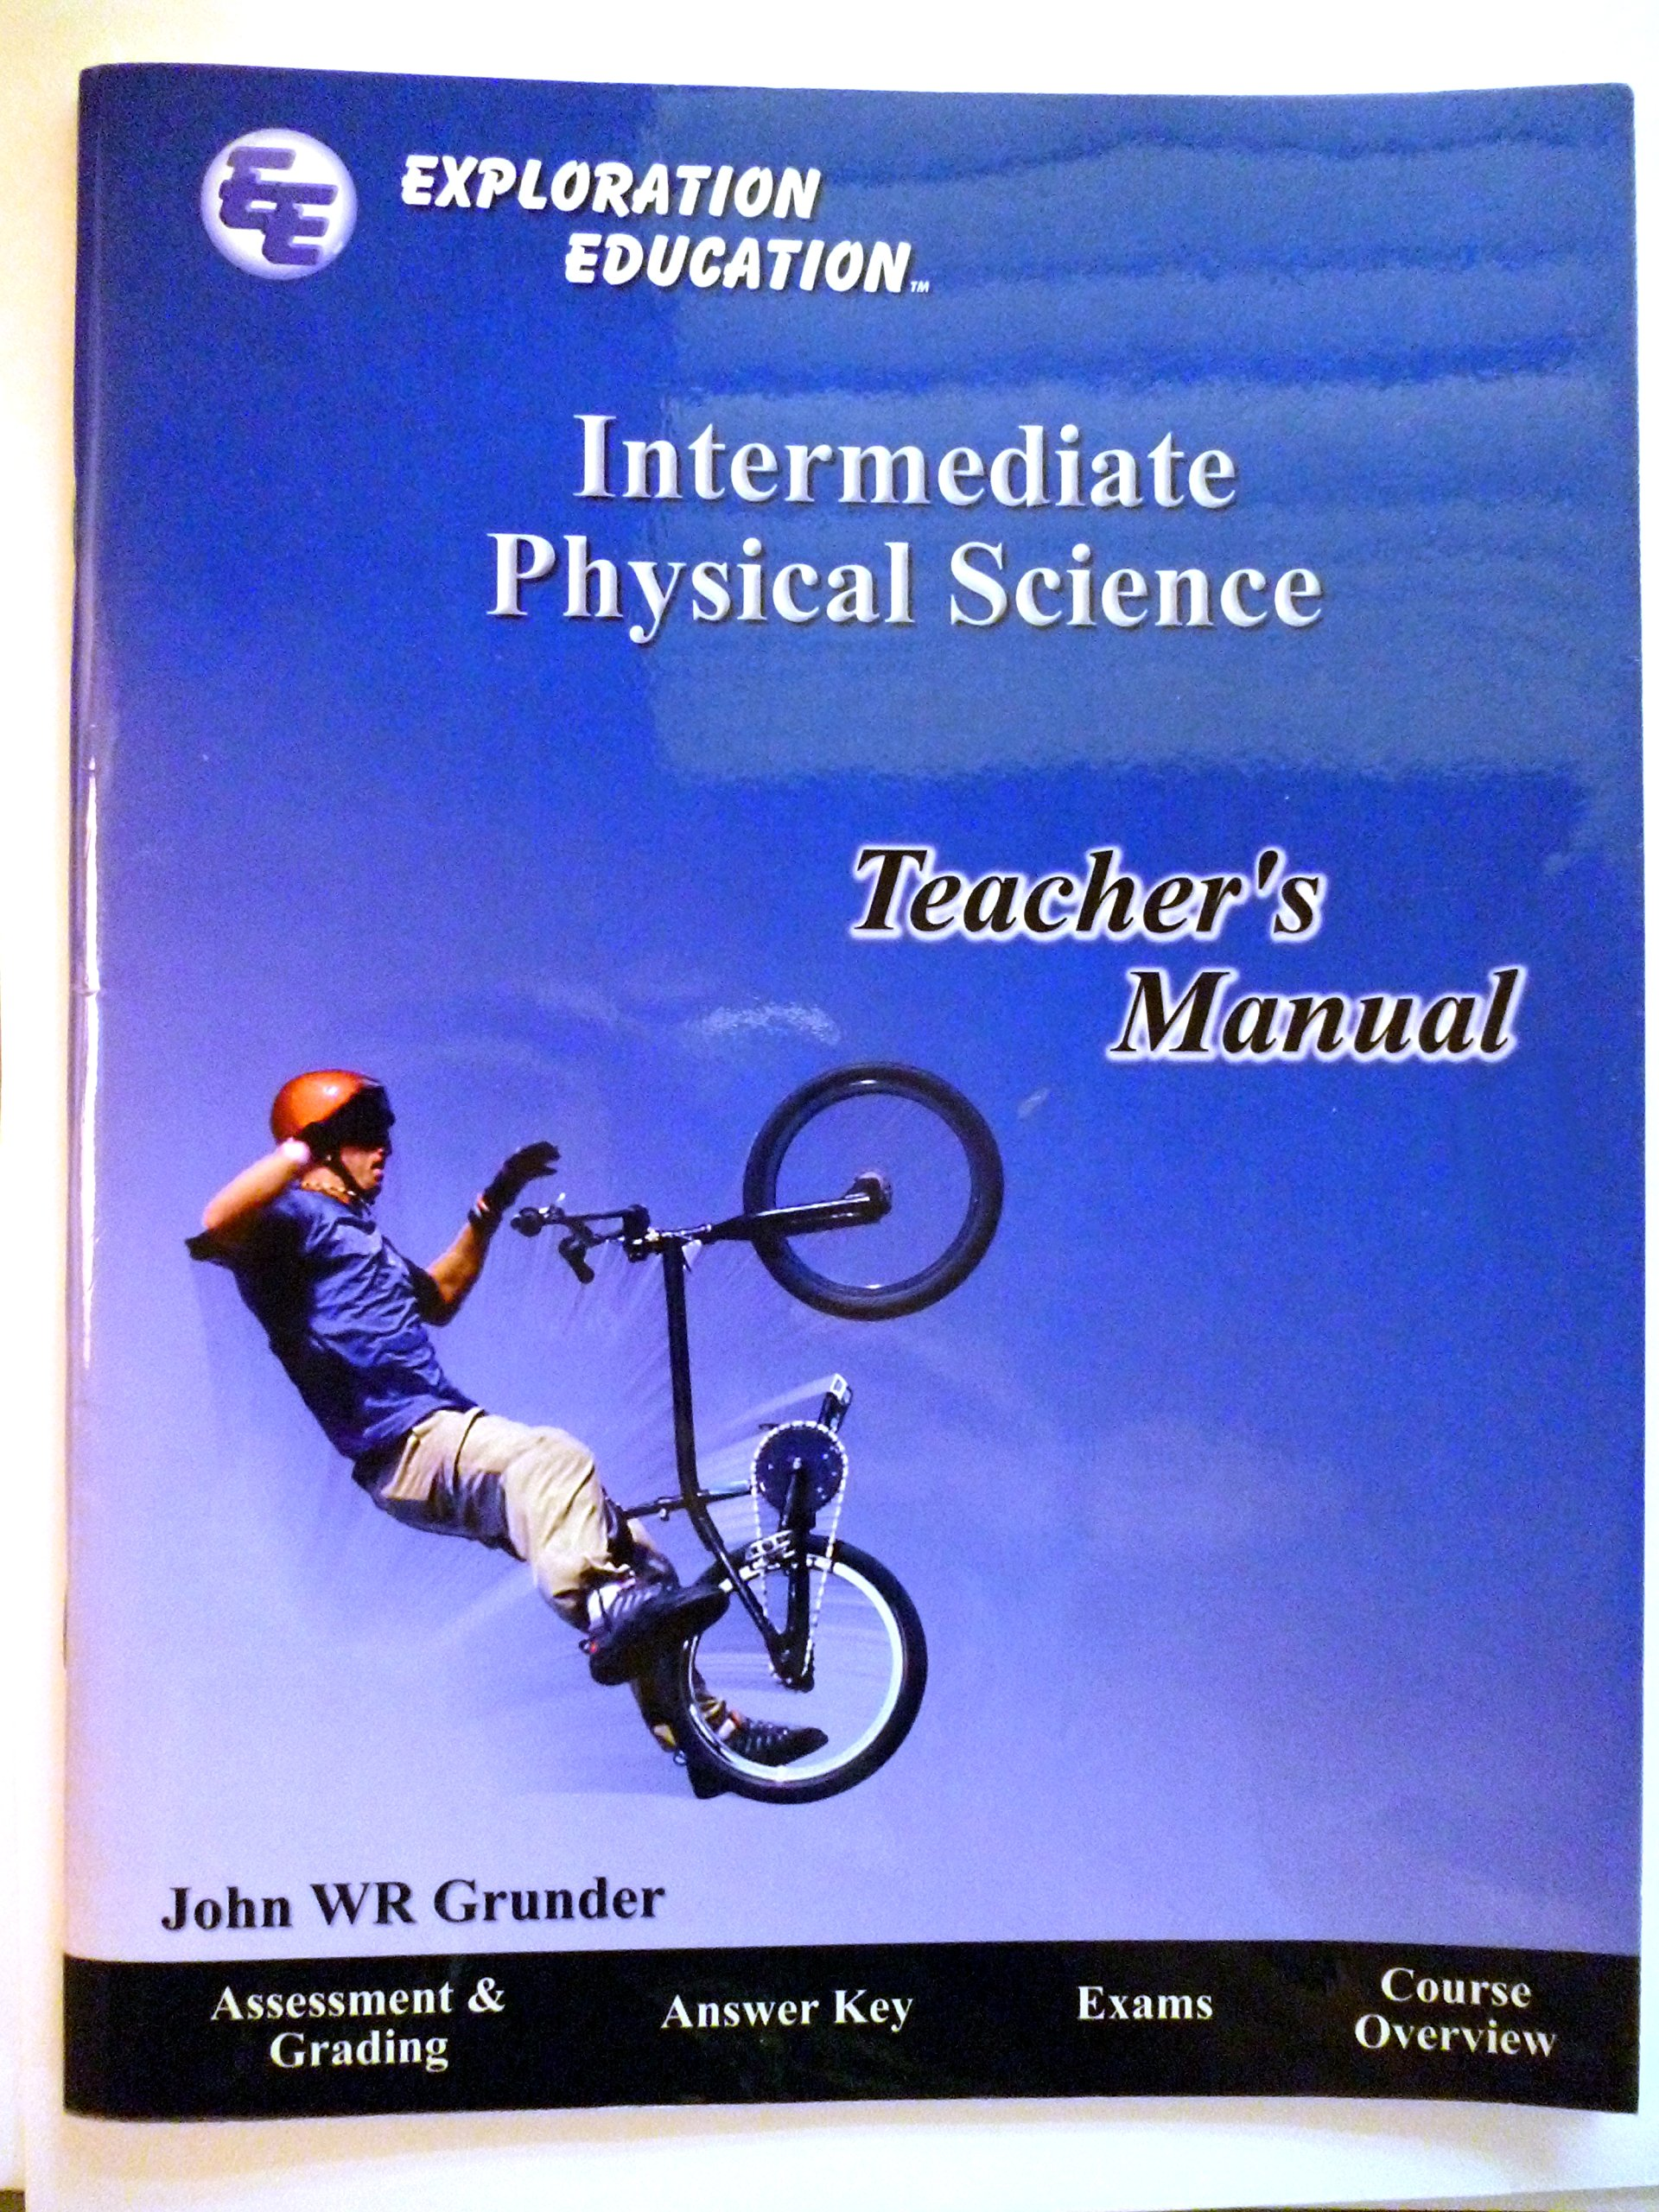 Intermediate Physical Science Teacher's Manual (Exploration